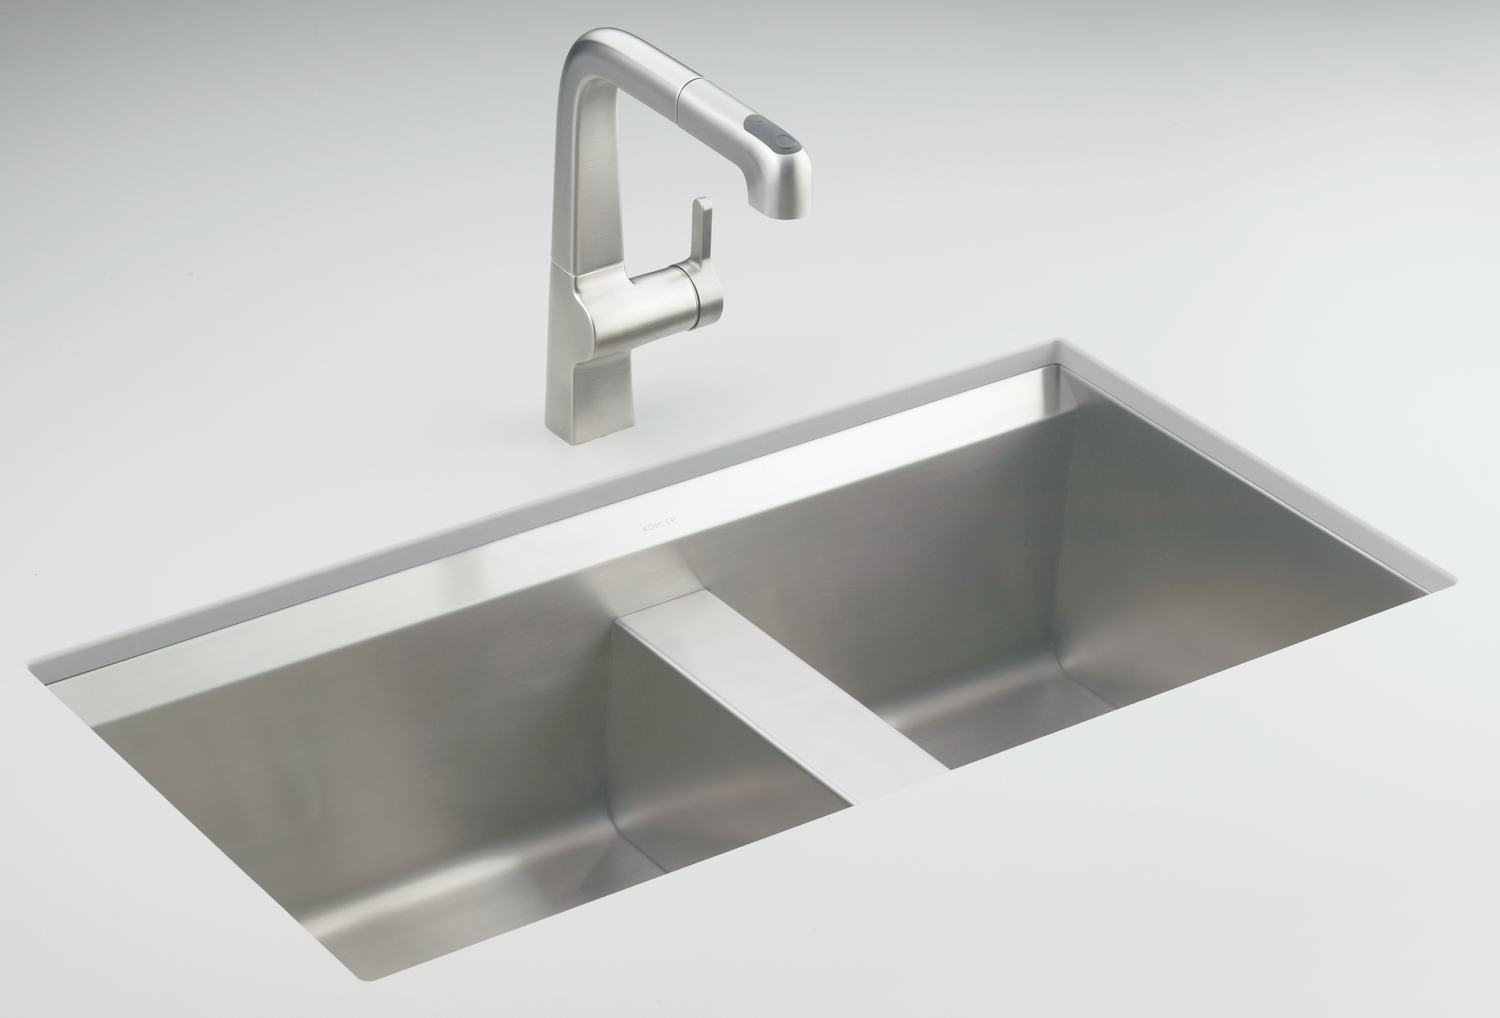 Kohler K 3672 Na 8 Degree Offset Double Basin Kitchen Sink